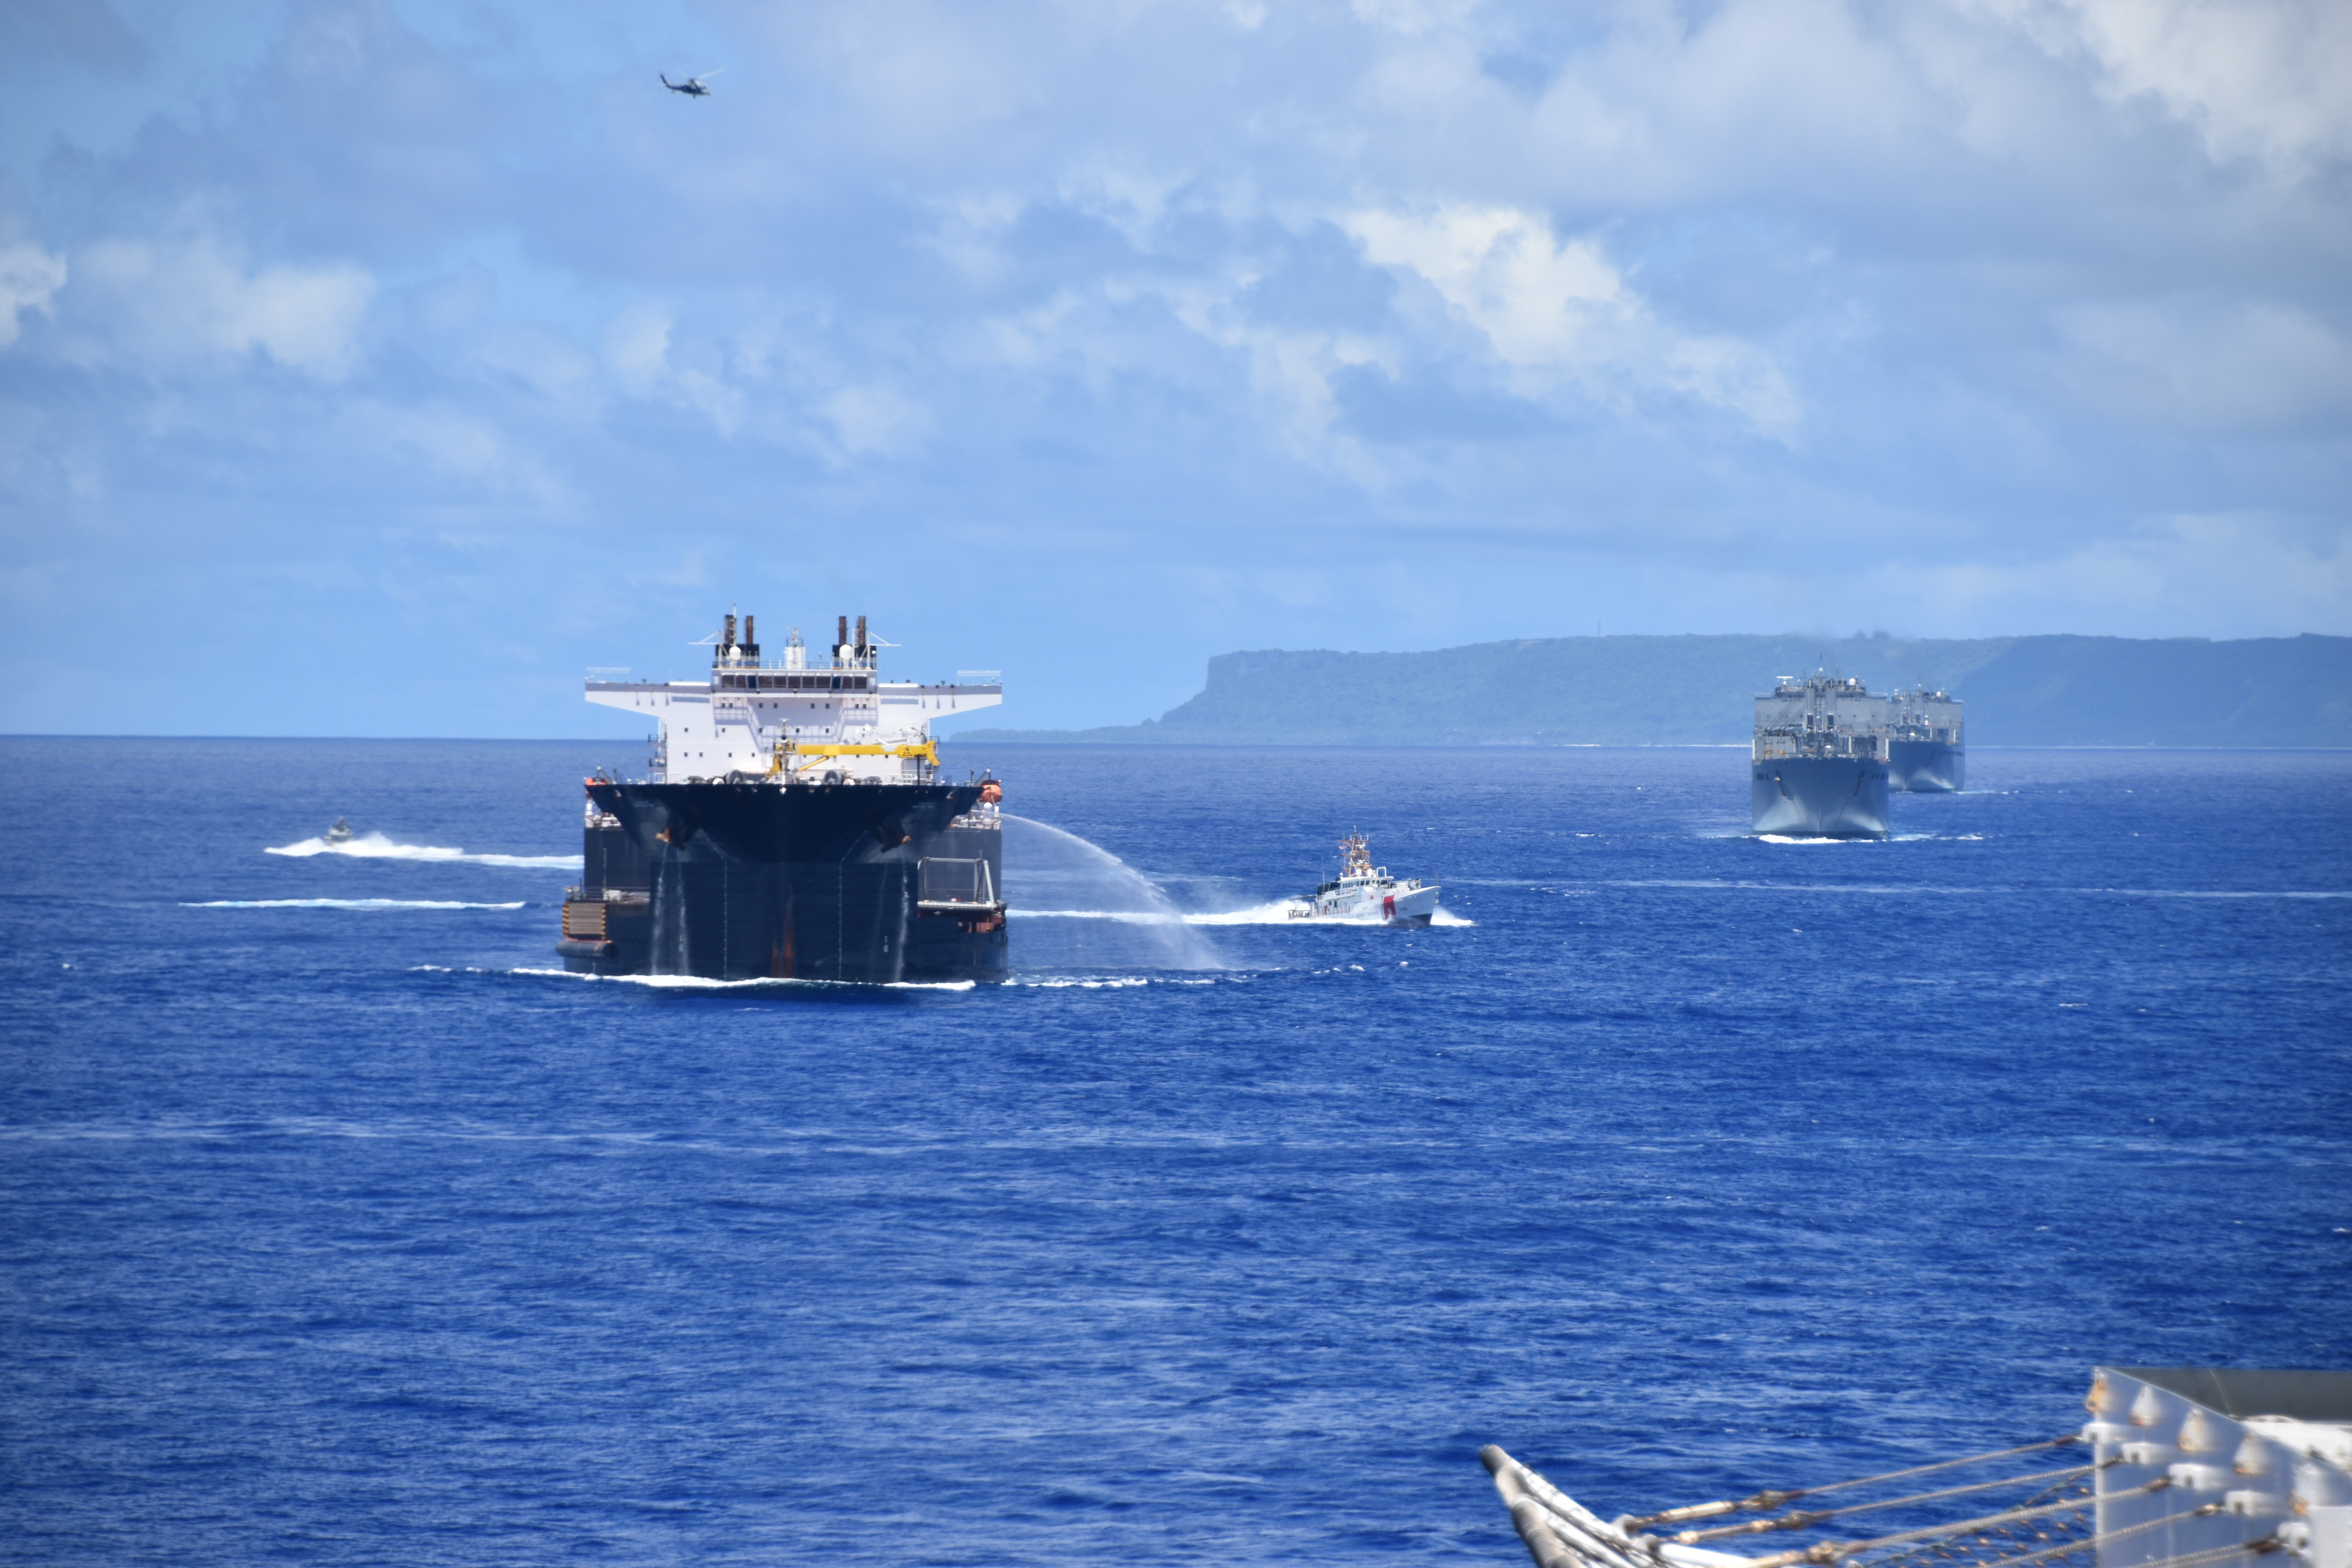 While steaming in a formation near Guam, USNS Montford Point employs their hose, a pre-planned response, which it might use during convoy operations.  Pictured from left are:  a Coastal Riverine Group 1's mark VI boat, USNS Montford Point (T-ESD 1), U.S. Coast Guard Cutter Myrtle Hazard (WPC-1139), USNS Red Cloud (T-AKR 313), USNS Watkins (T-AKR 315), and in the air, an MH-60R from Helicopter Sea Combat Squadron 25.